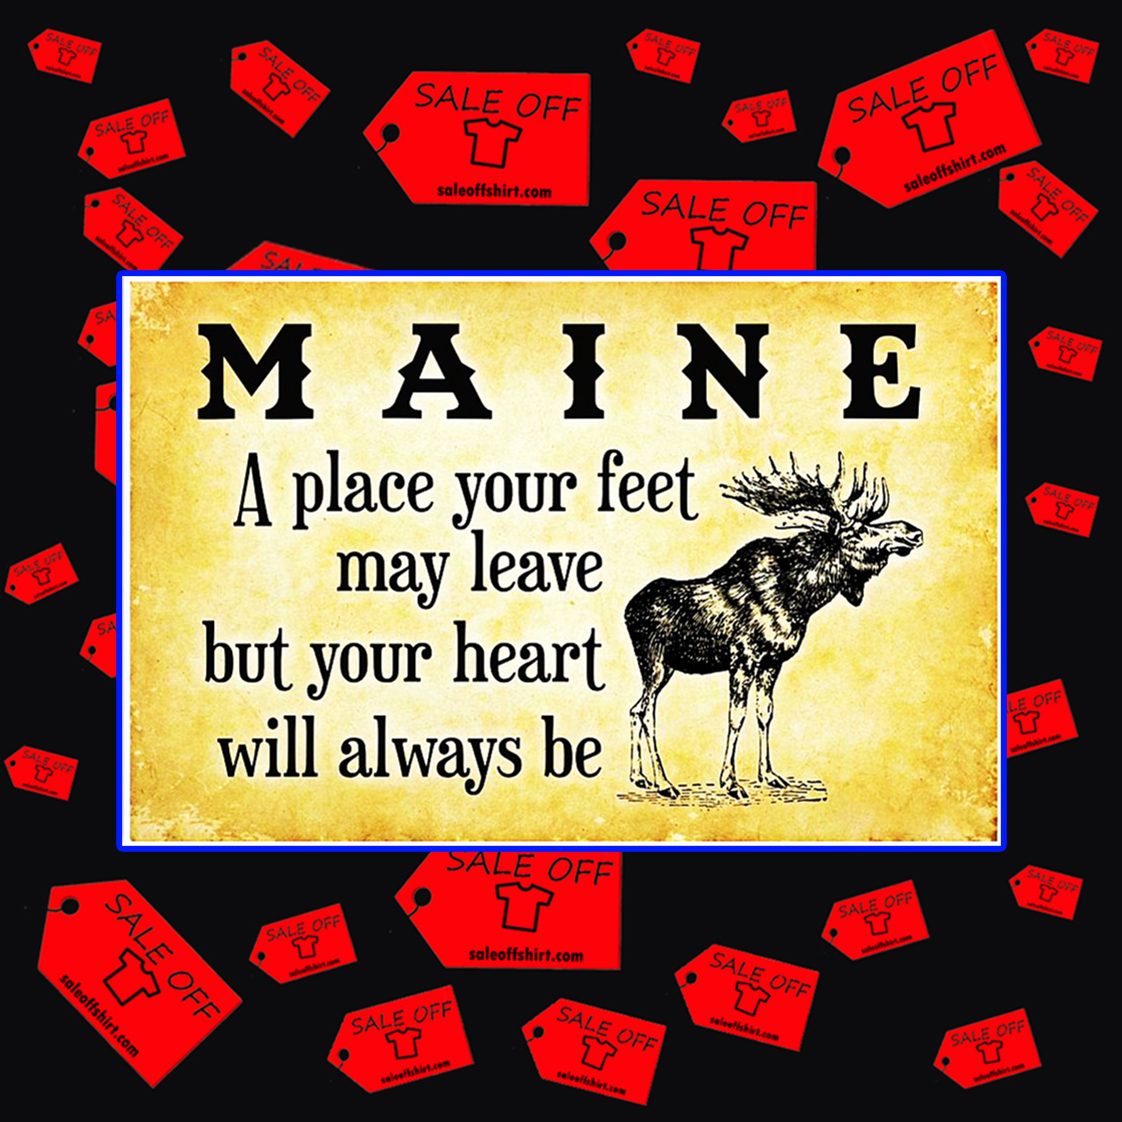 Maine a place your feet may leave but your heart will always be poster 36x24